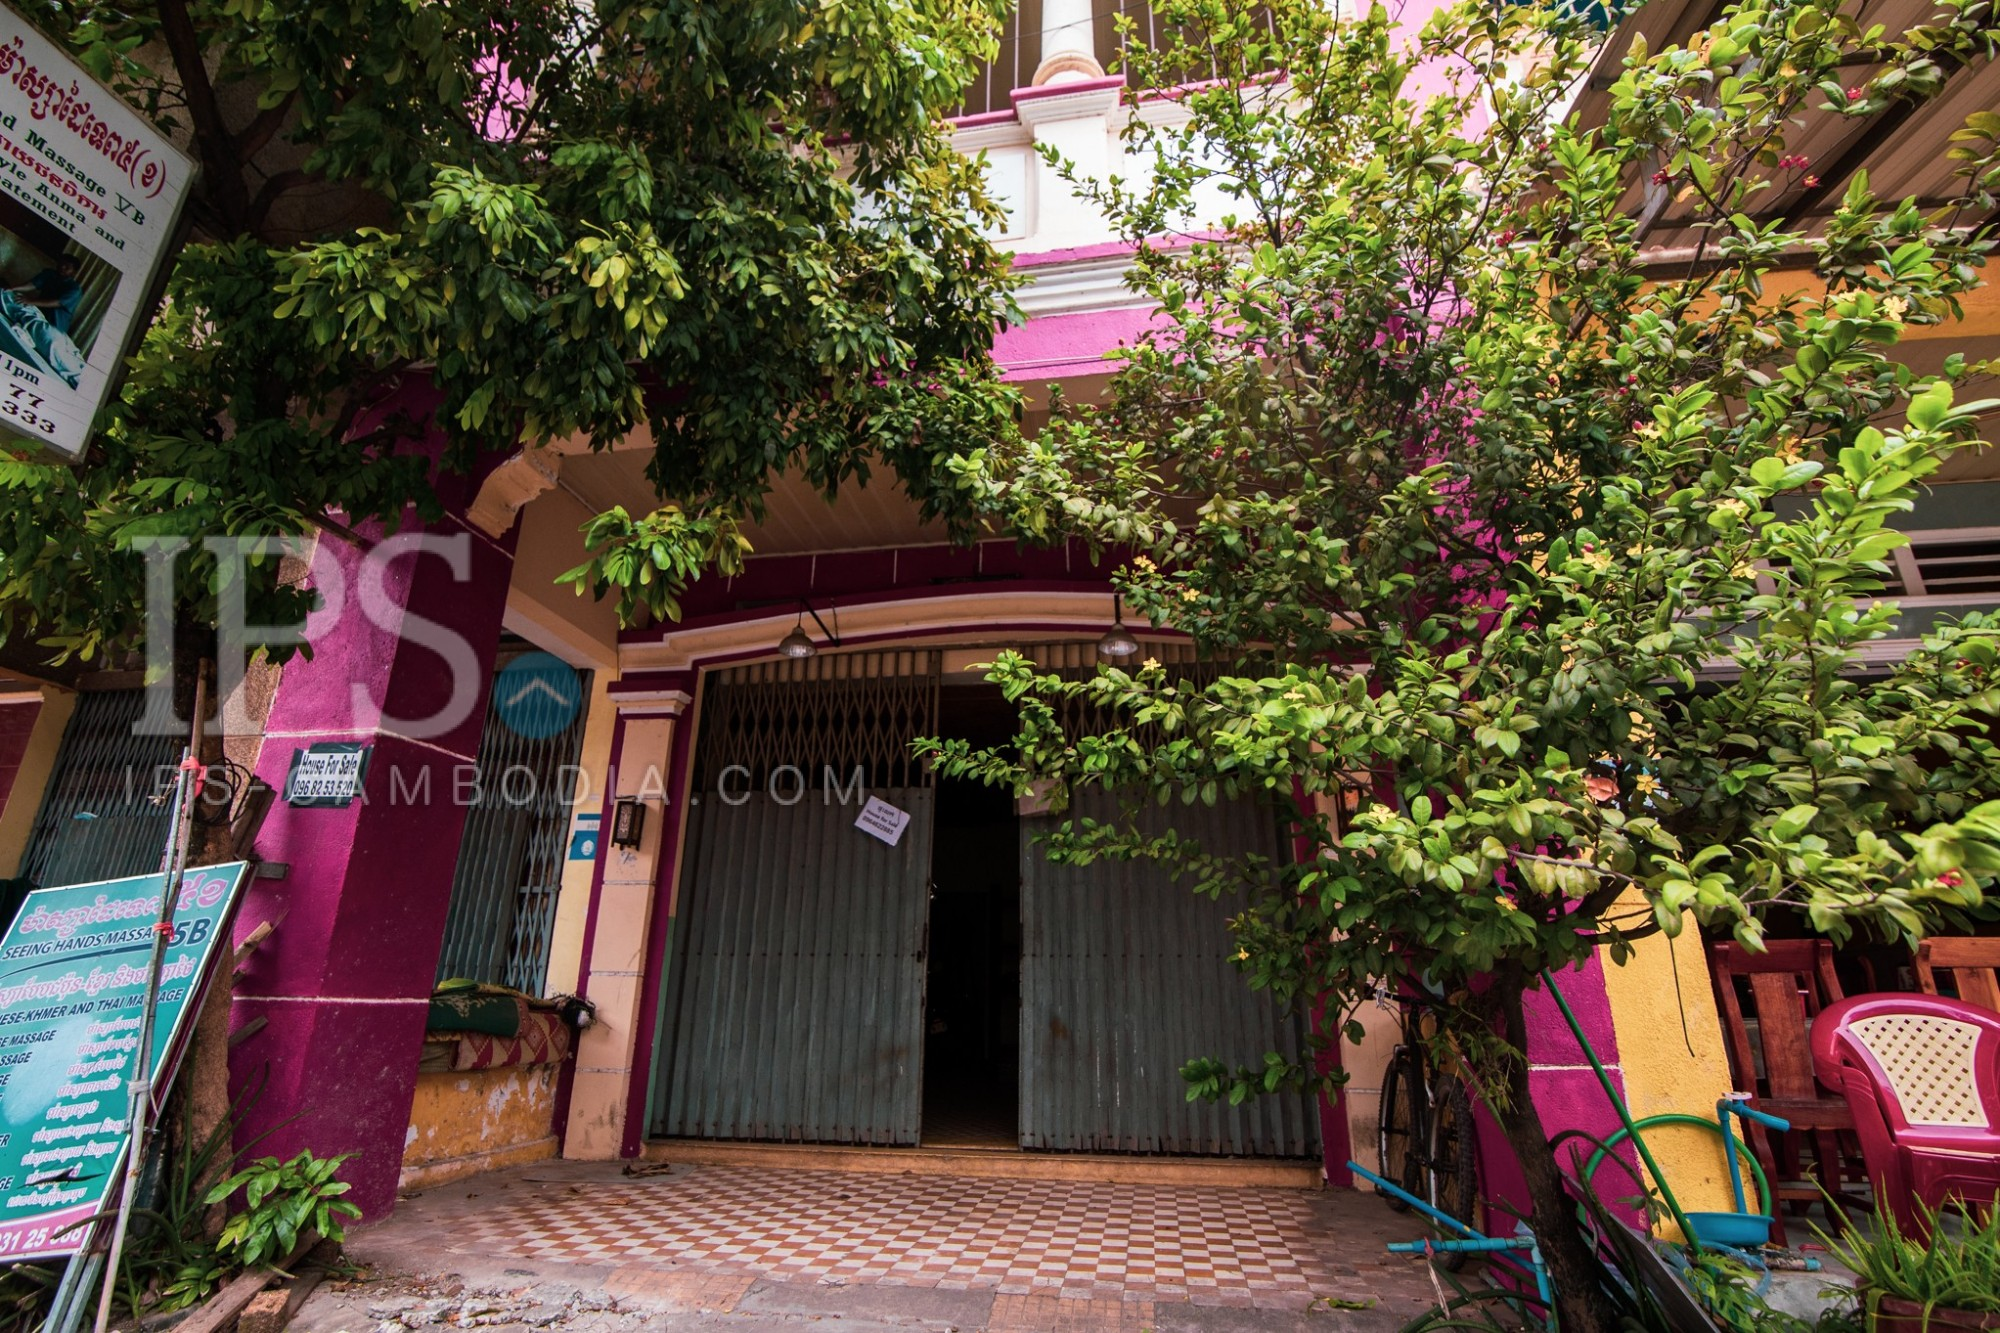 Commercial Property For Sale - Kampot, Cambodia